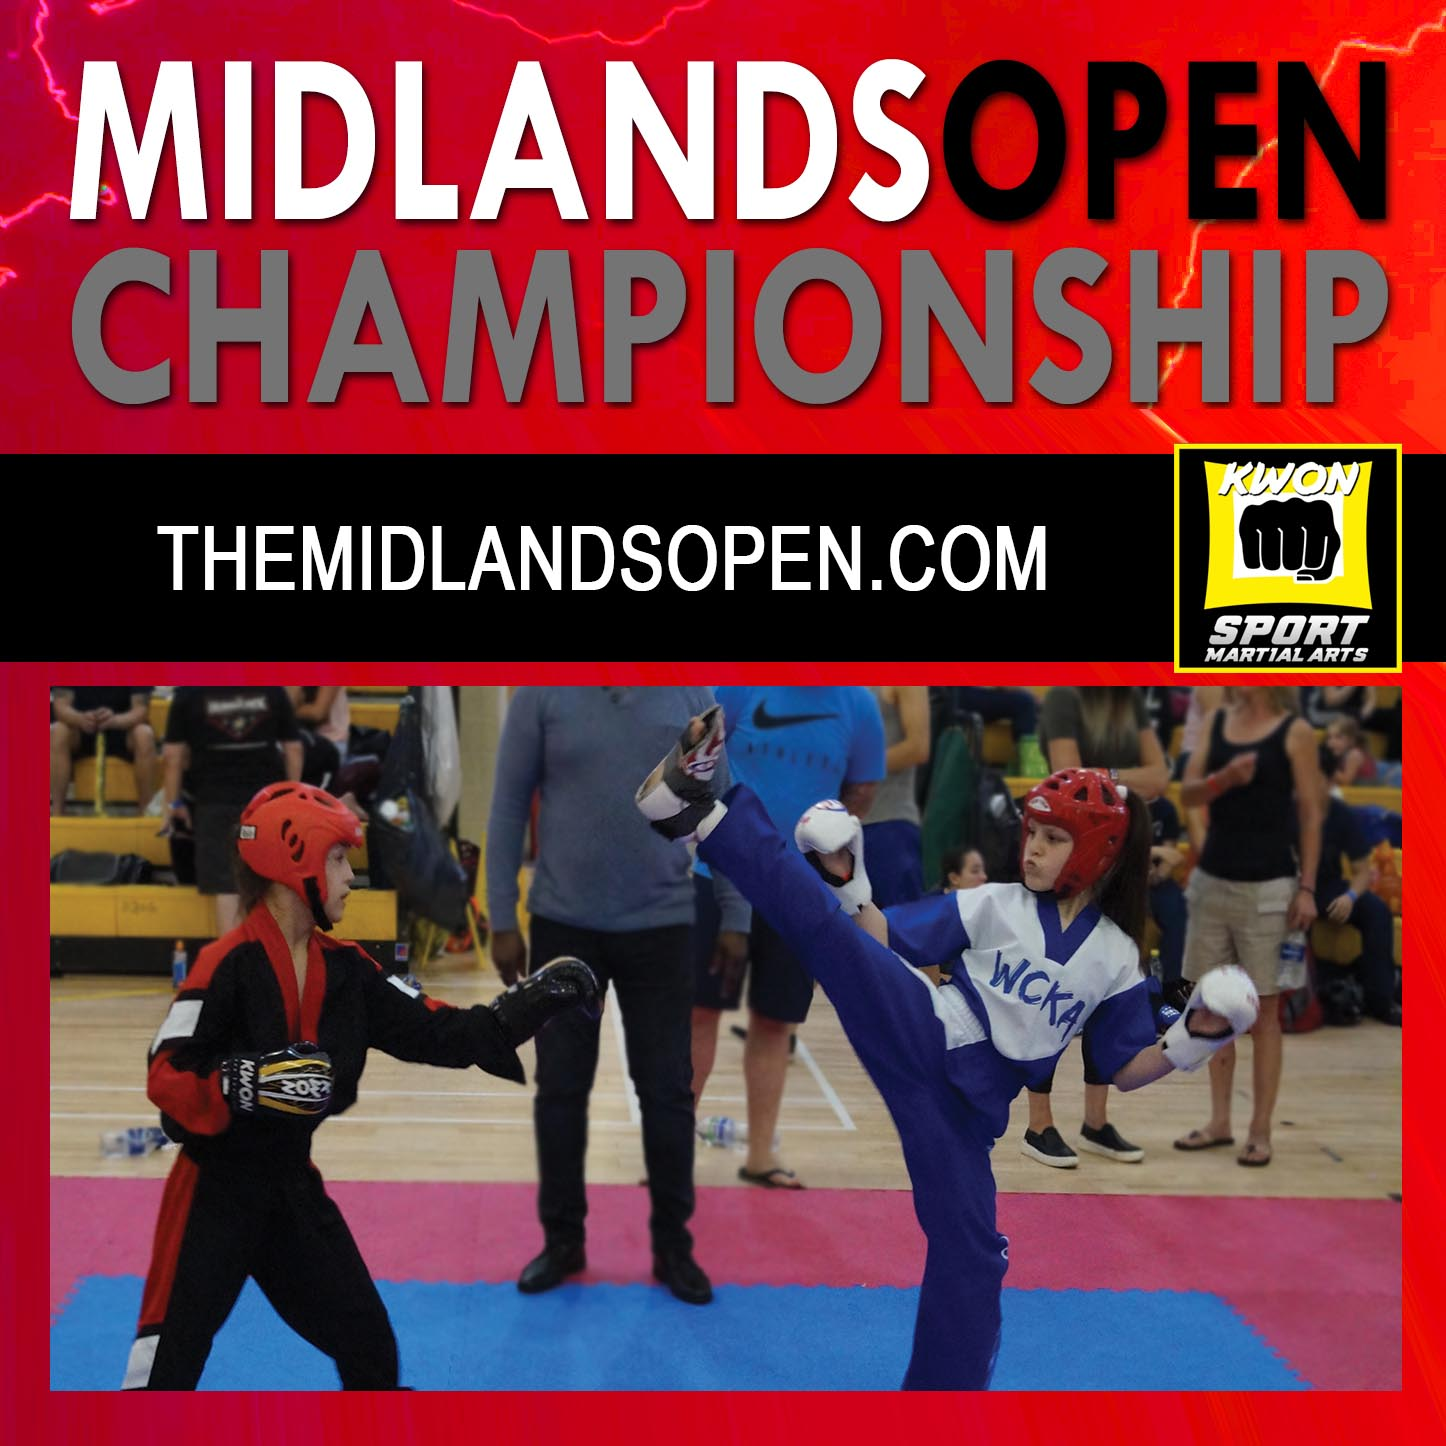 Midlands Open Championship for Kickboxing and Karate in the UK